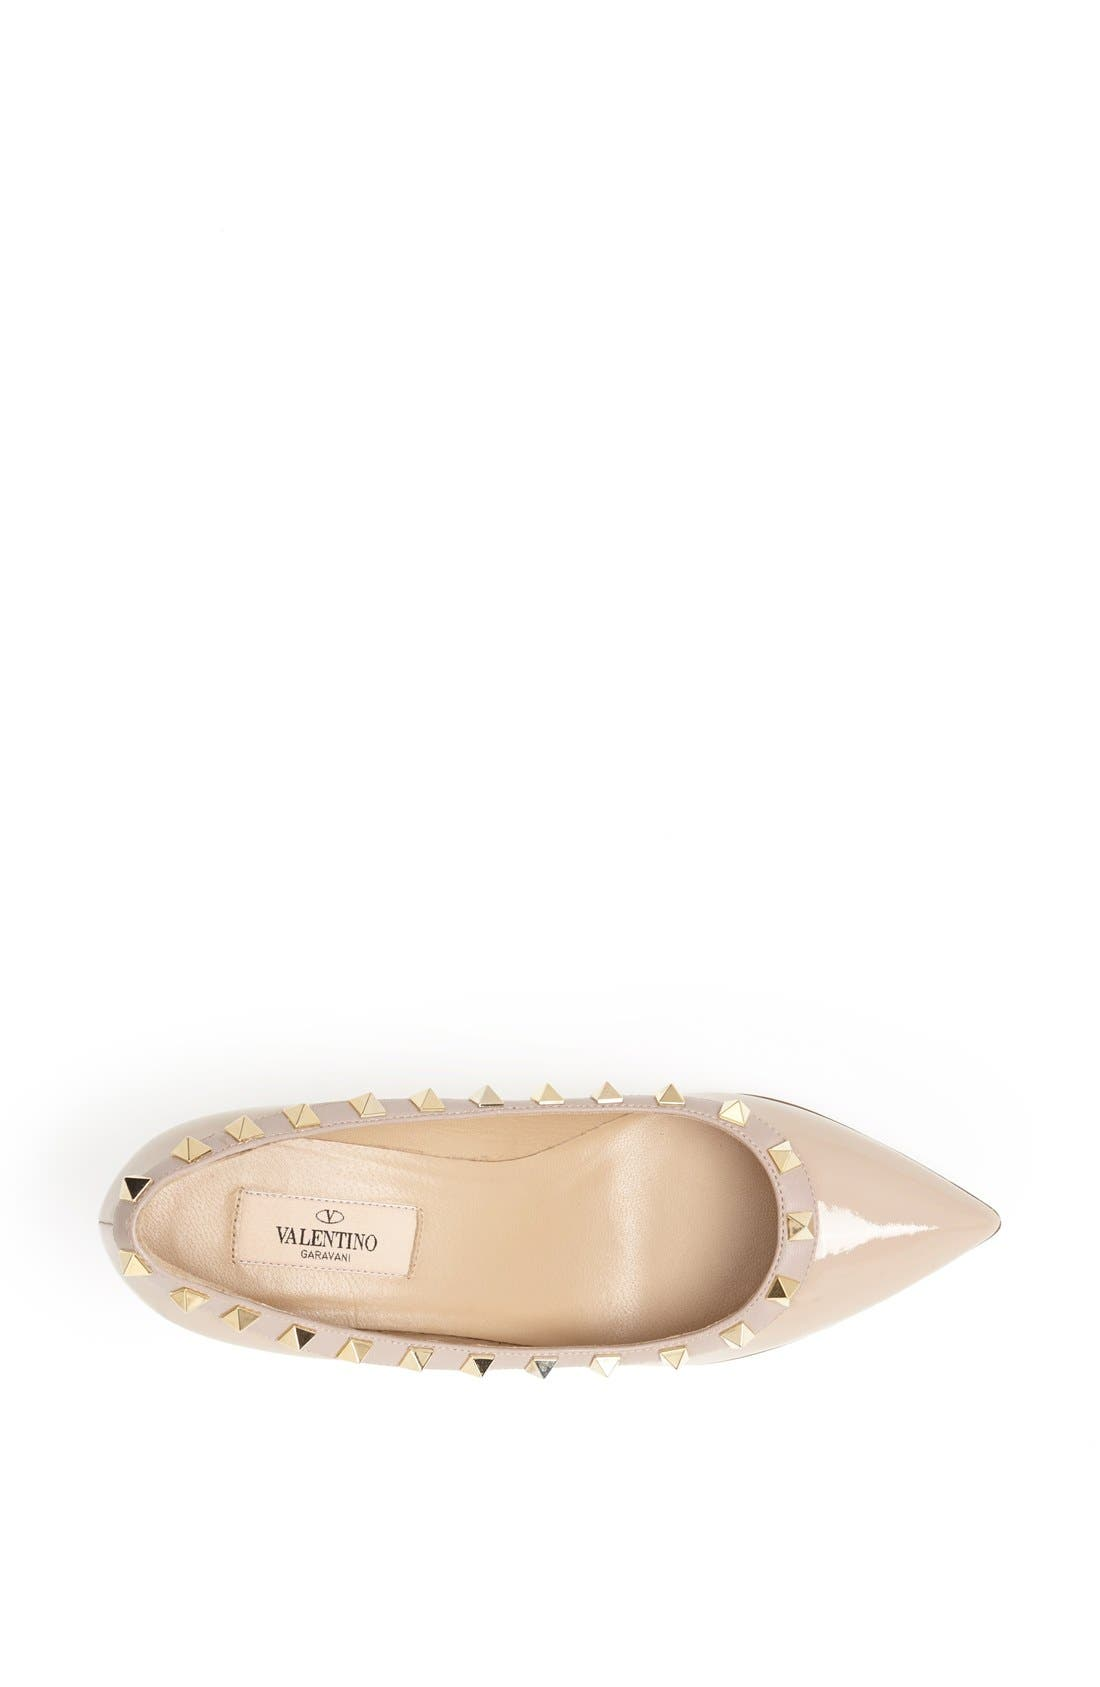 Alternate Image 3  - Valentino 'Rockstud' Wedge